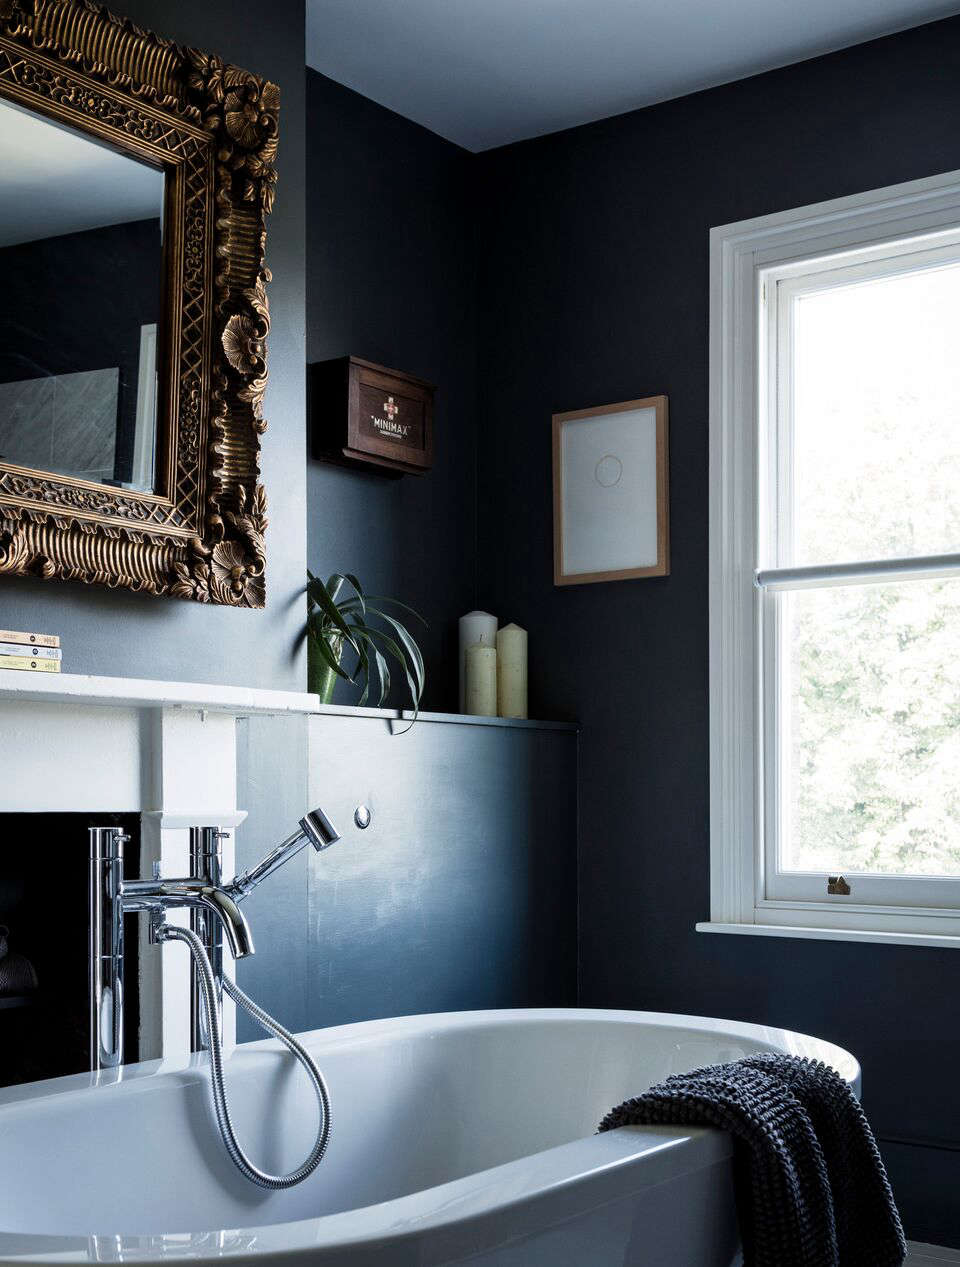 The en suite bathroom is dark and dramatic and painted in Down Pipe. Large mirrors and a window prevent it from being too dark.